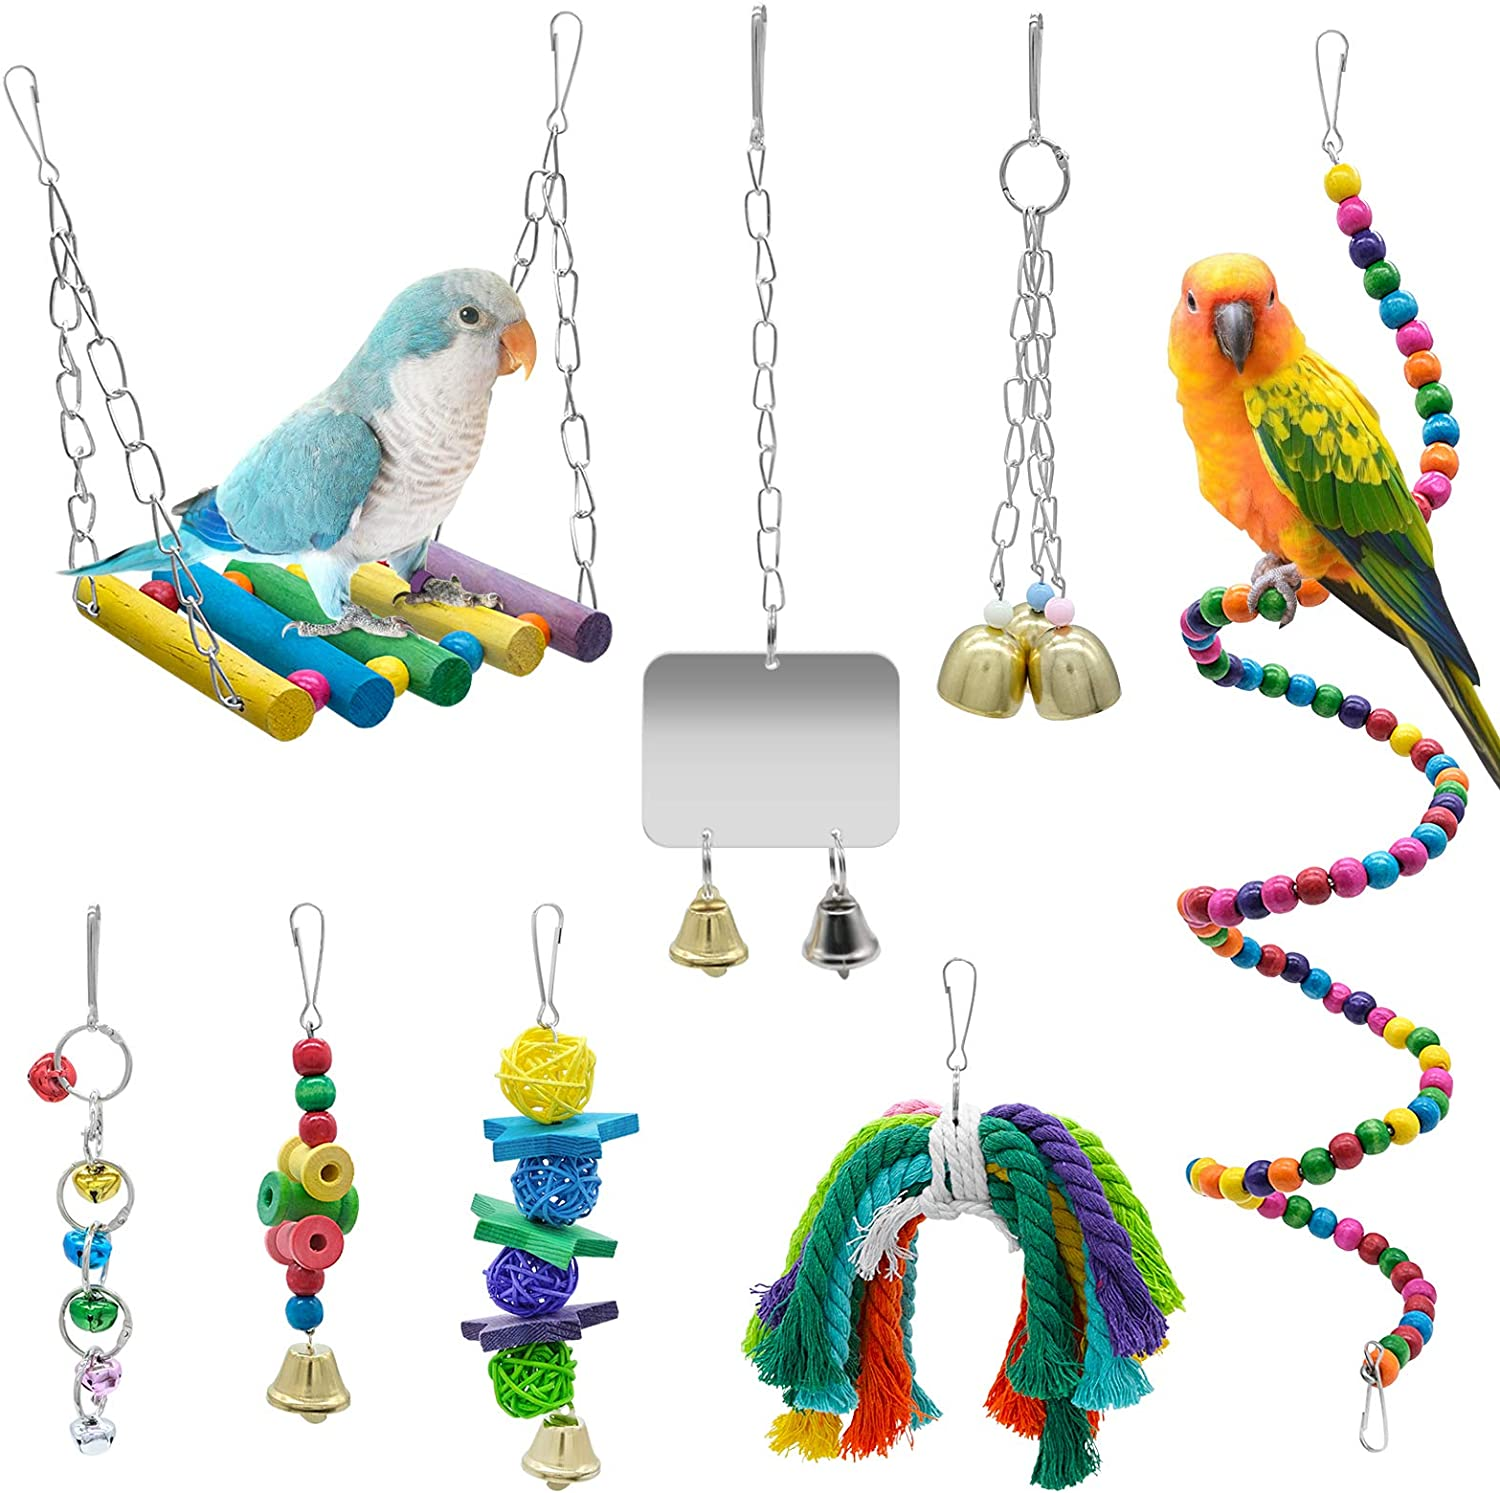 WBYJ 8 Pack Birds Parrot Toys Parrots Swing Hanging specialty shop Chewing Some reservation wit